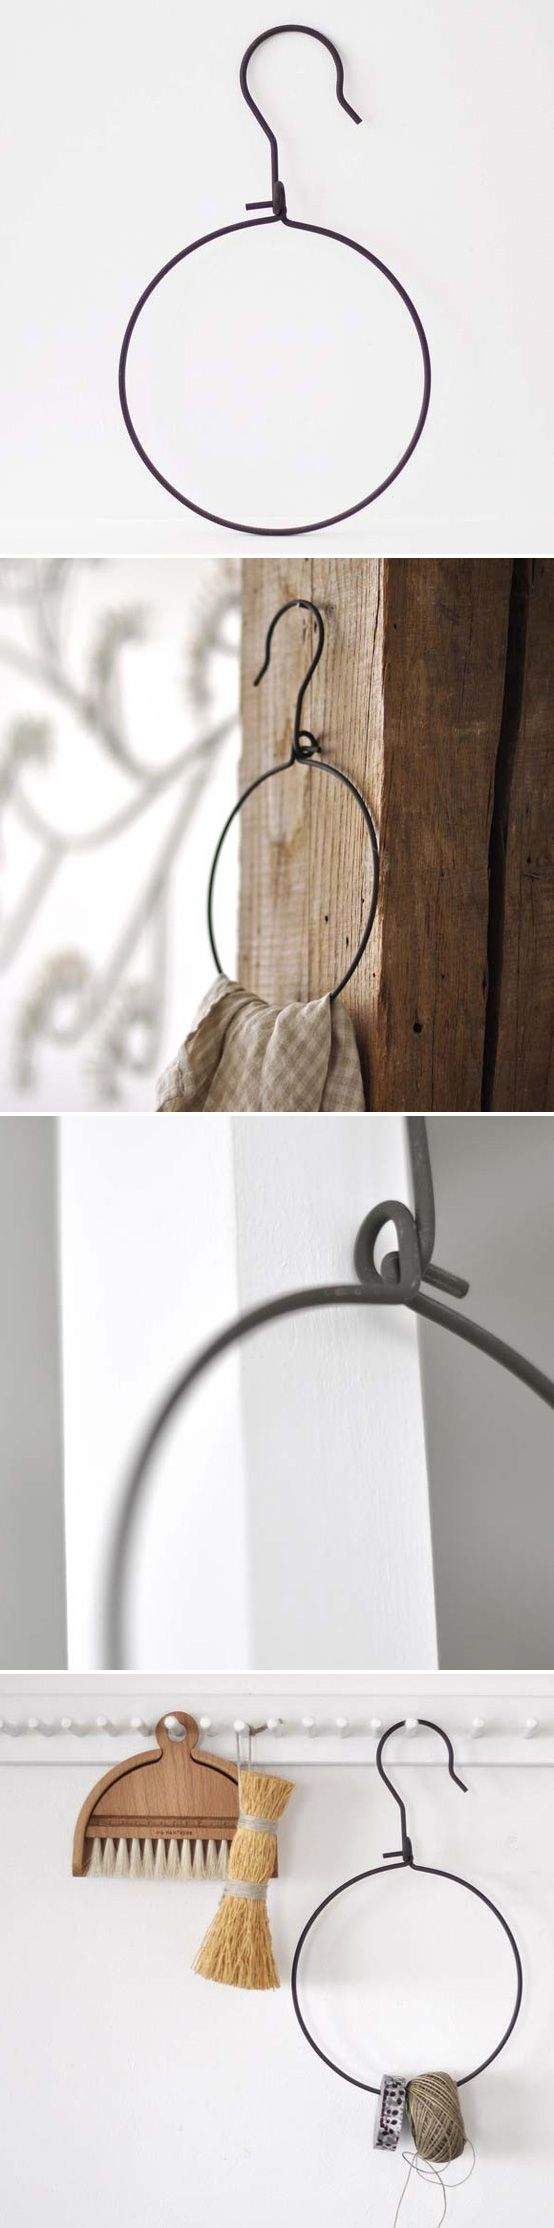 DIY :: WIRE HOOK HANGER ::                                                                                                                                                                                 More